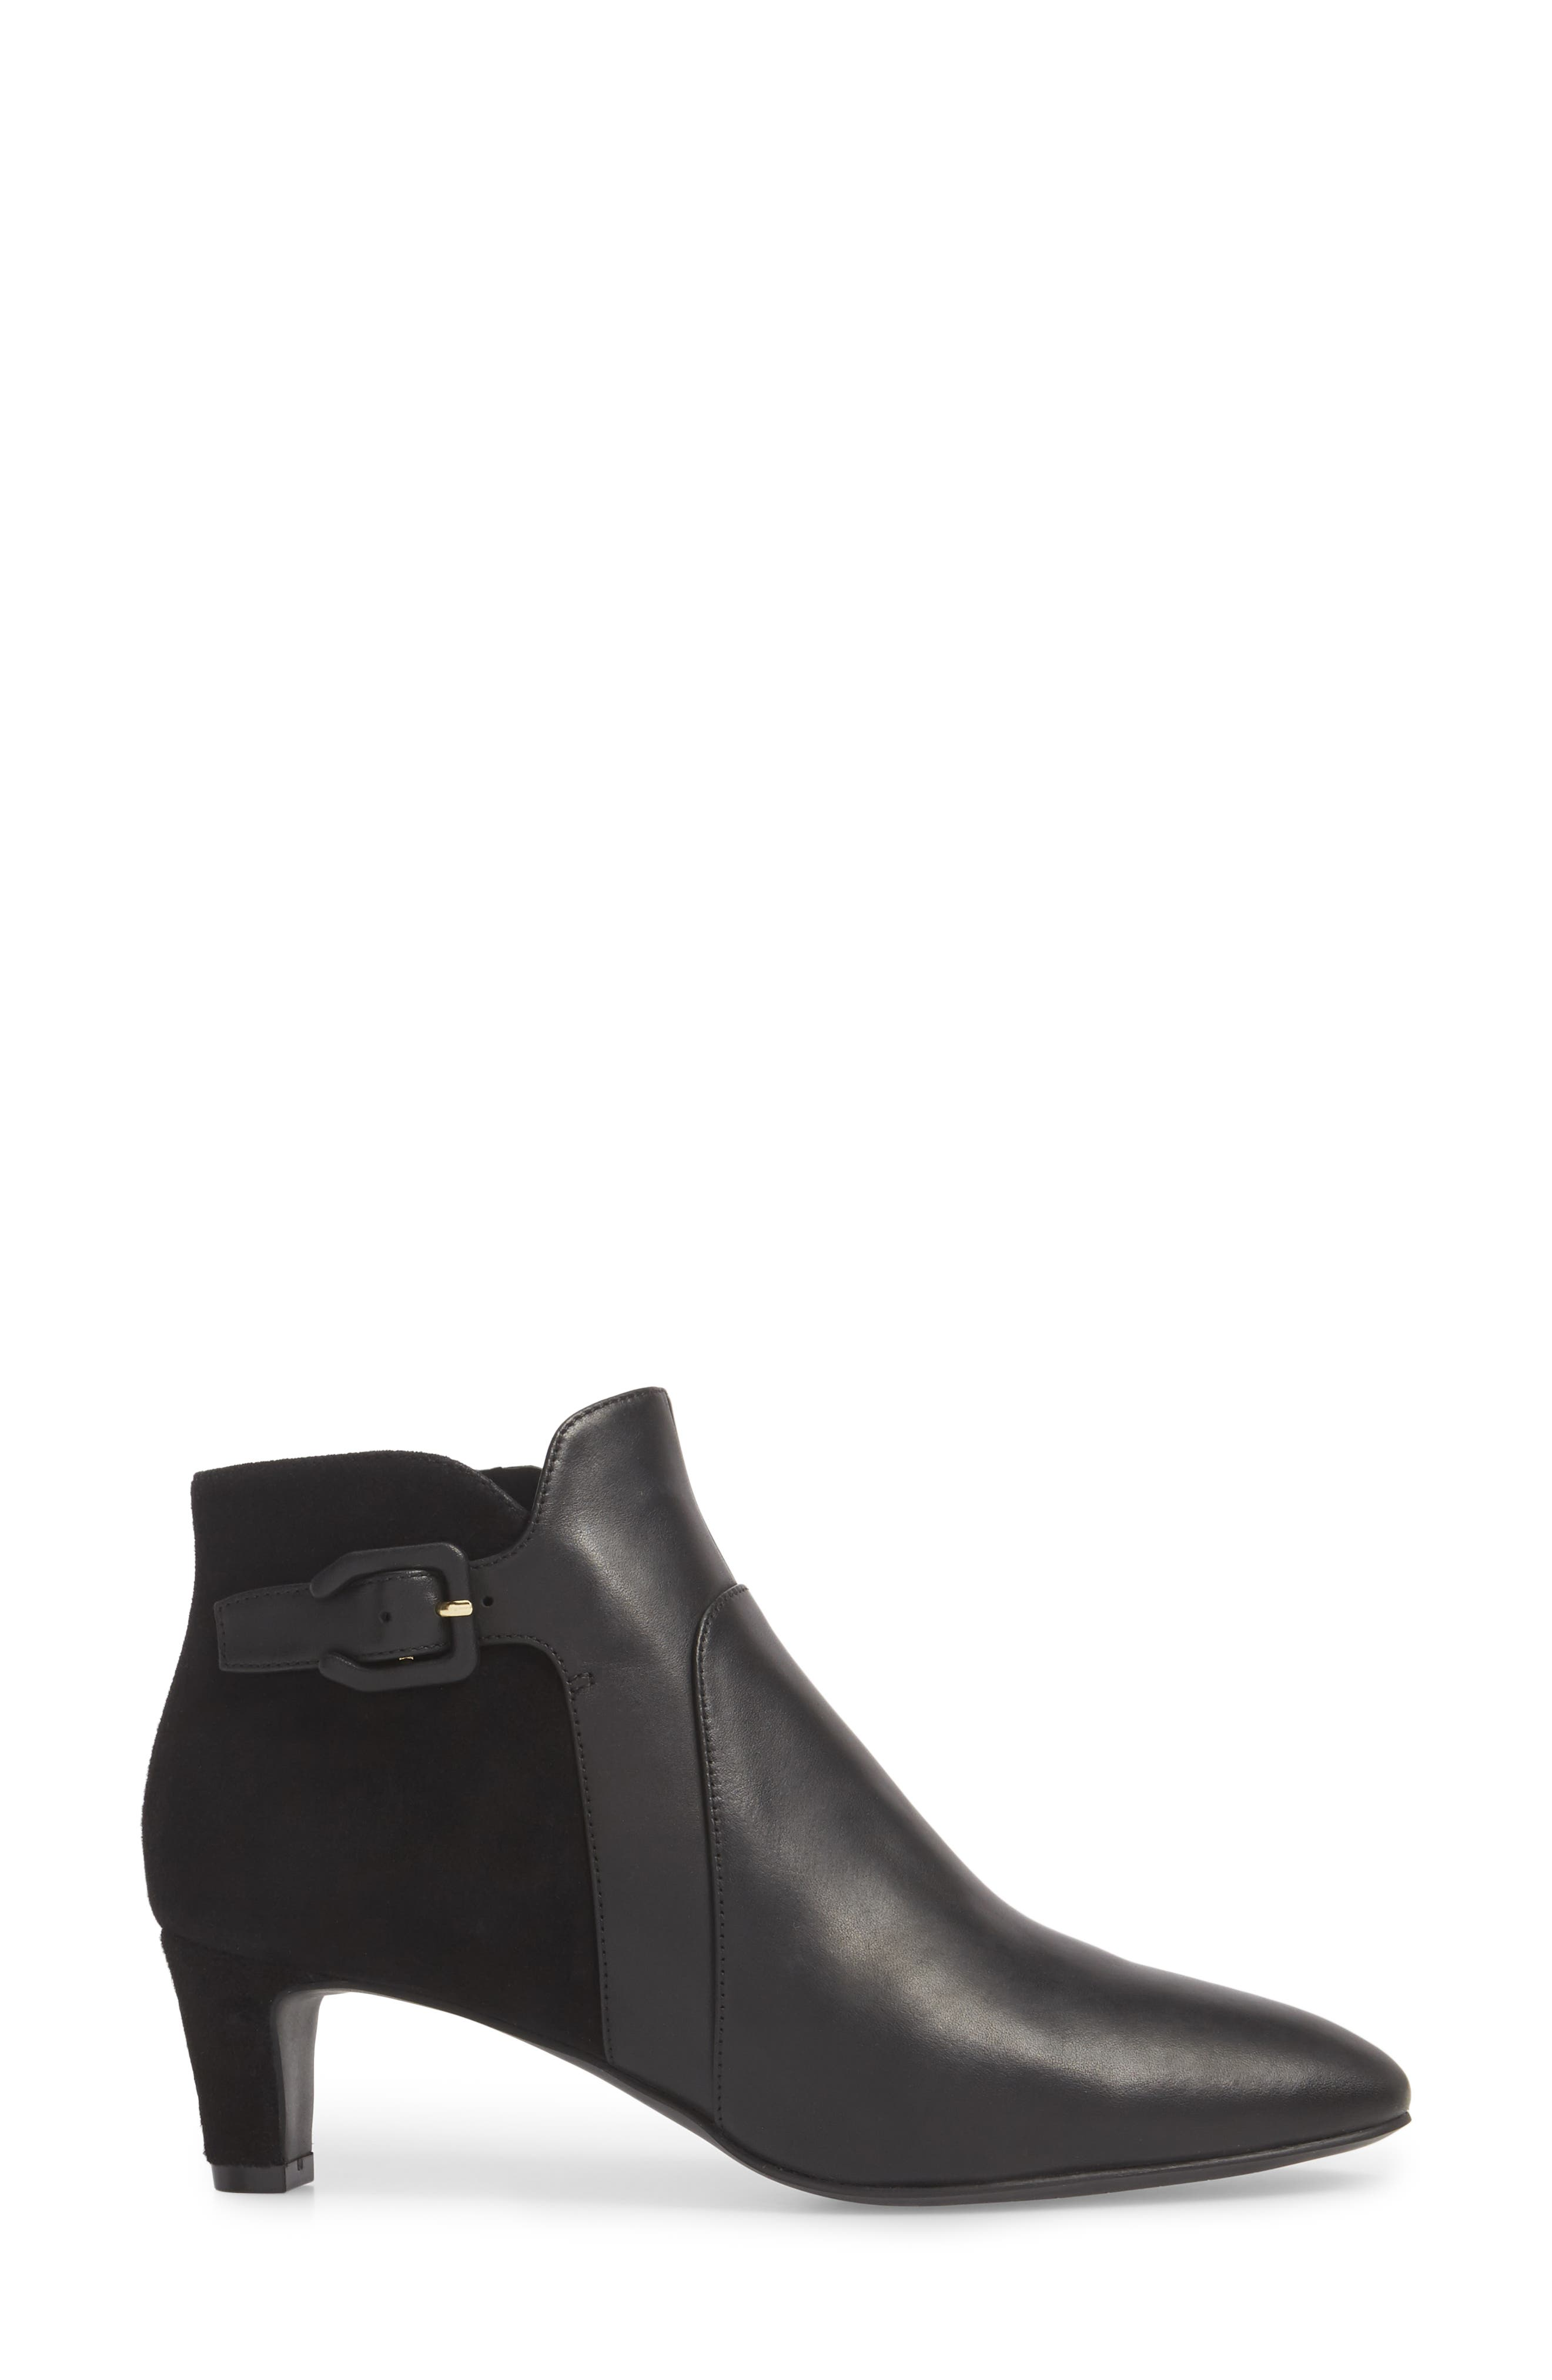 COLE HAAN, Sylvia Waterproof Bootie, Alternate thumbnail 3, color, BLACK LEATHER